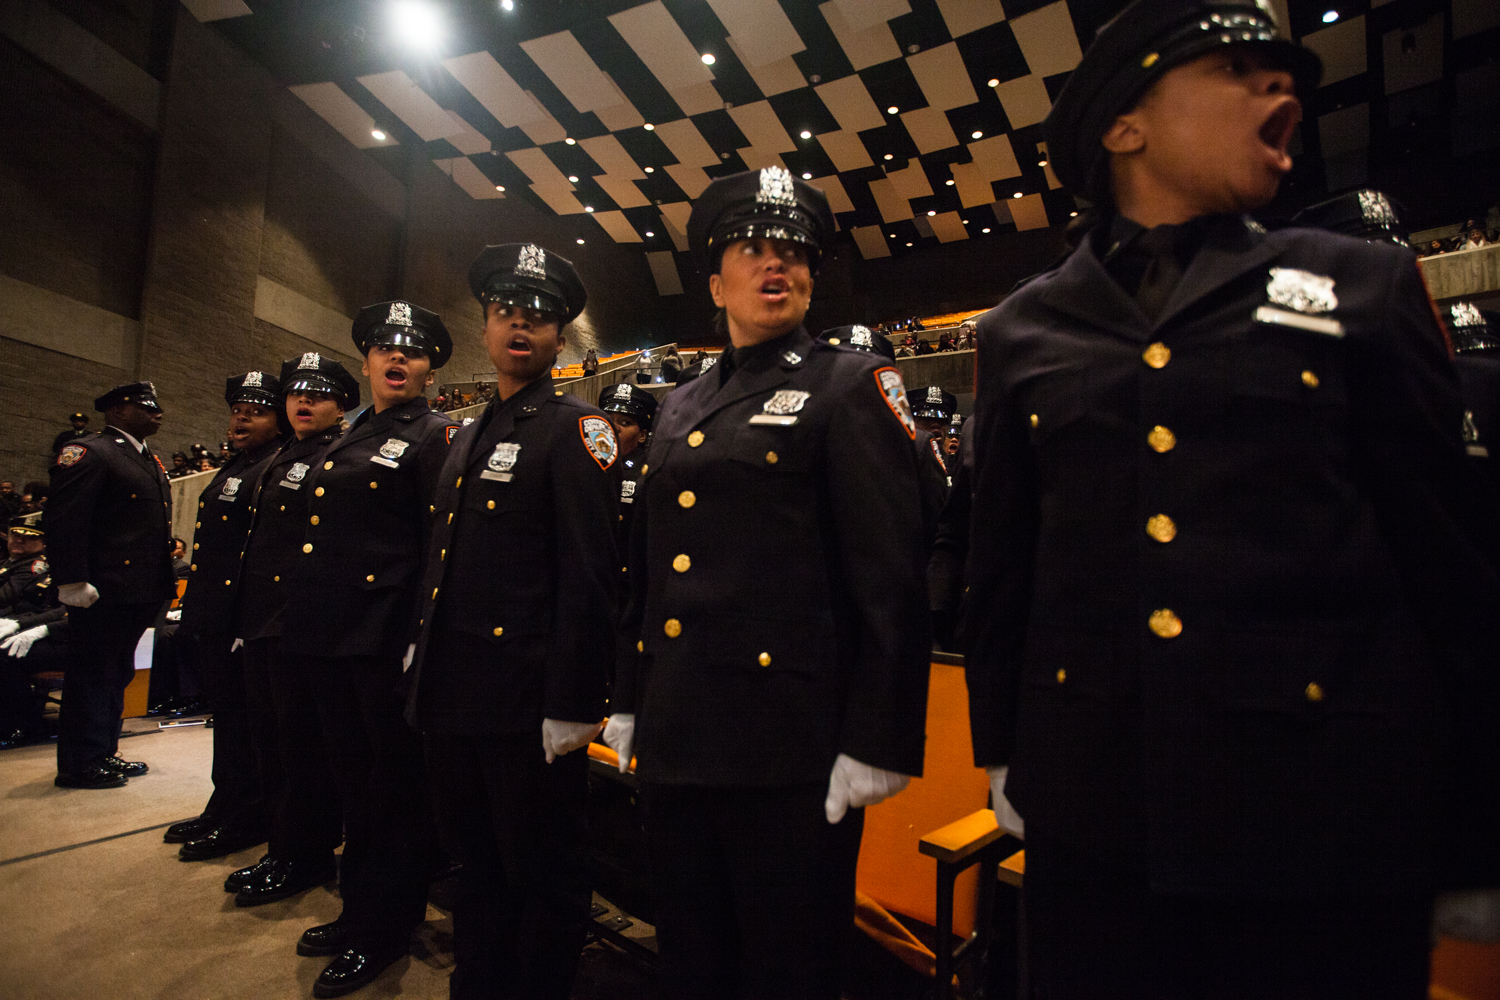 A graduation ceremony for the New York City Department of Correction. (Emily Assiran/New York Observer)